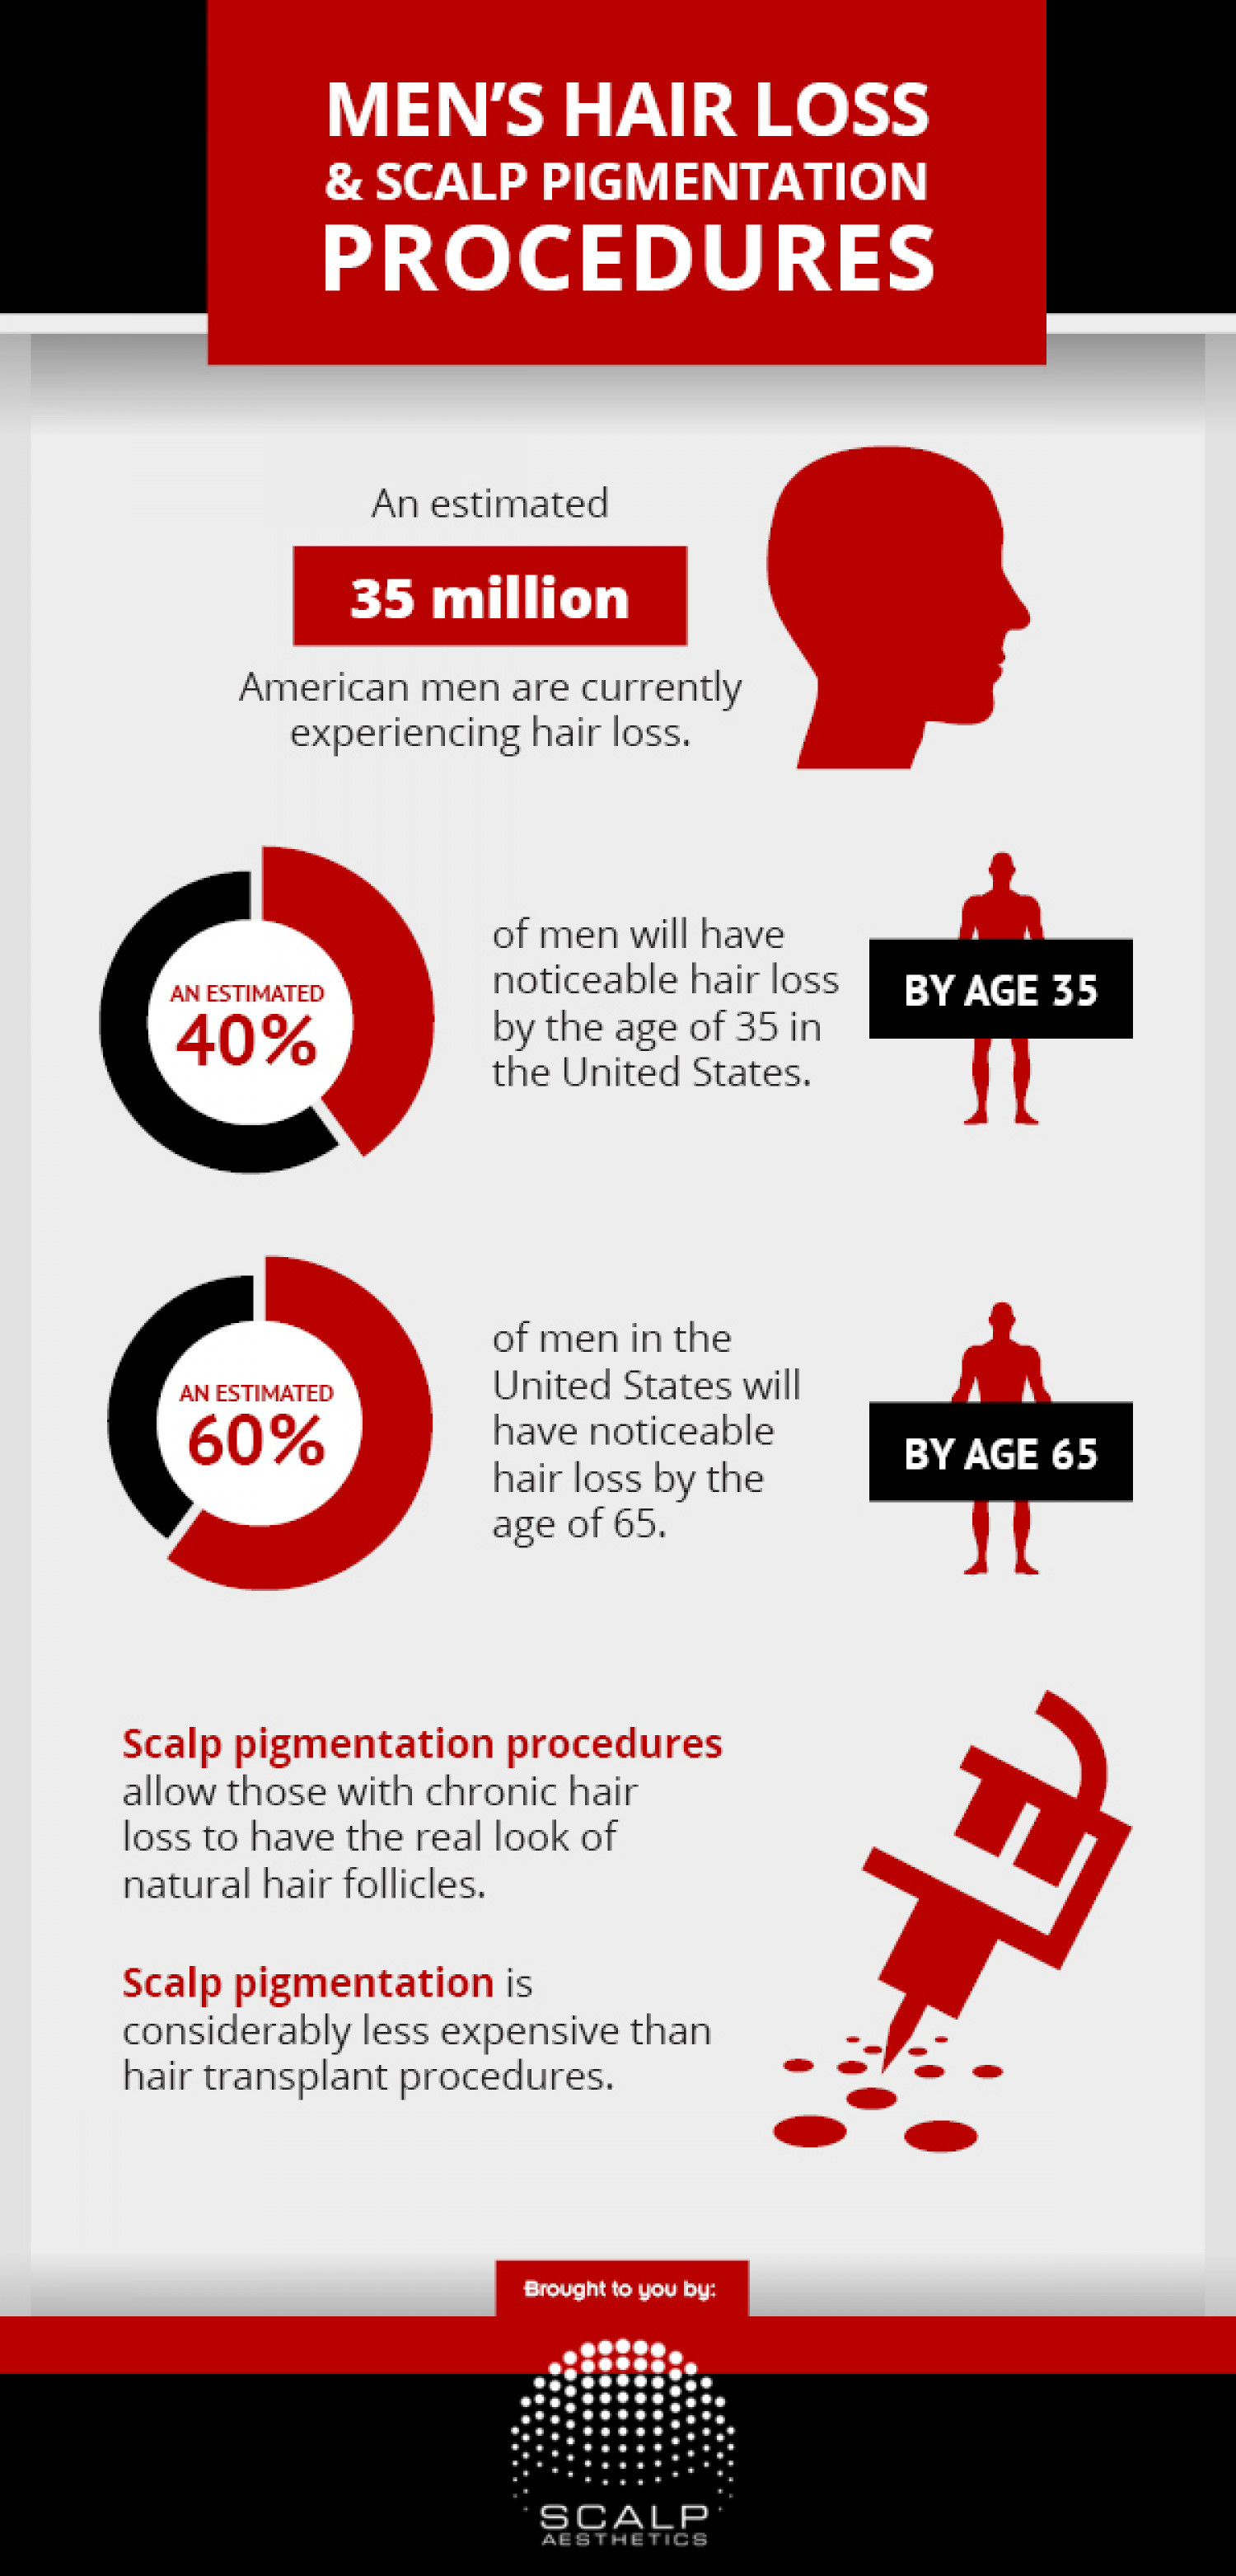 Men's Hair Loss and Scalp Pigmentation Procedures Infographic